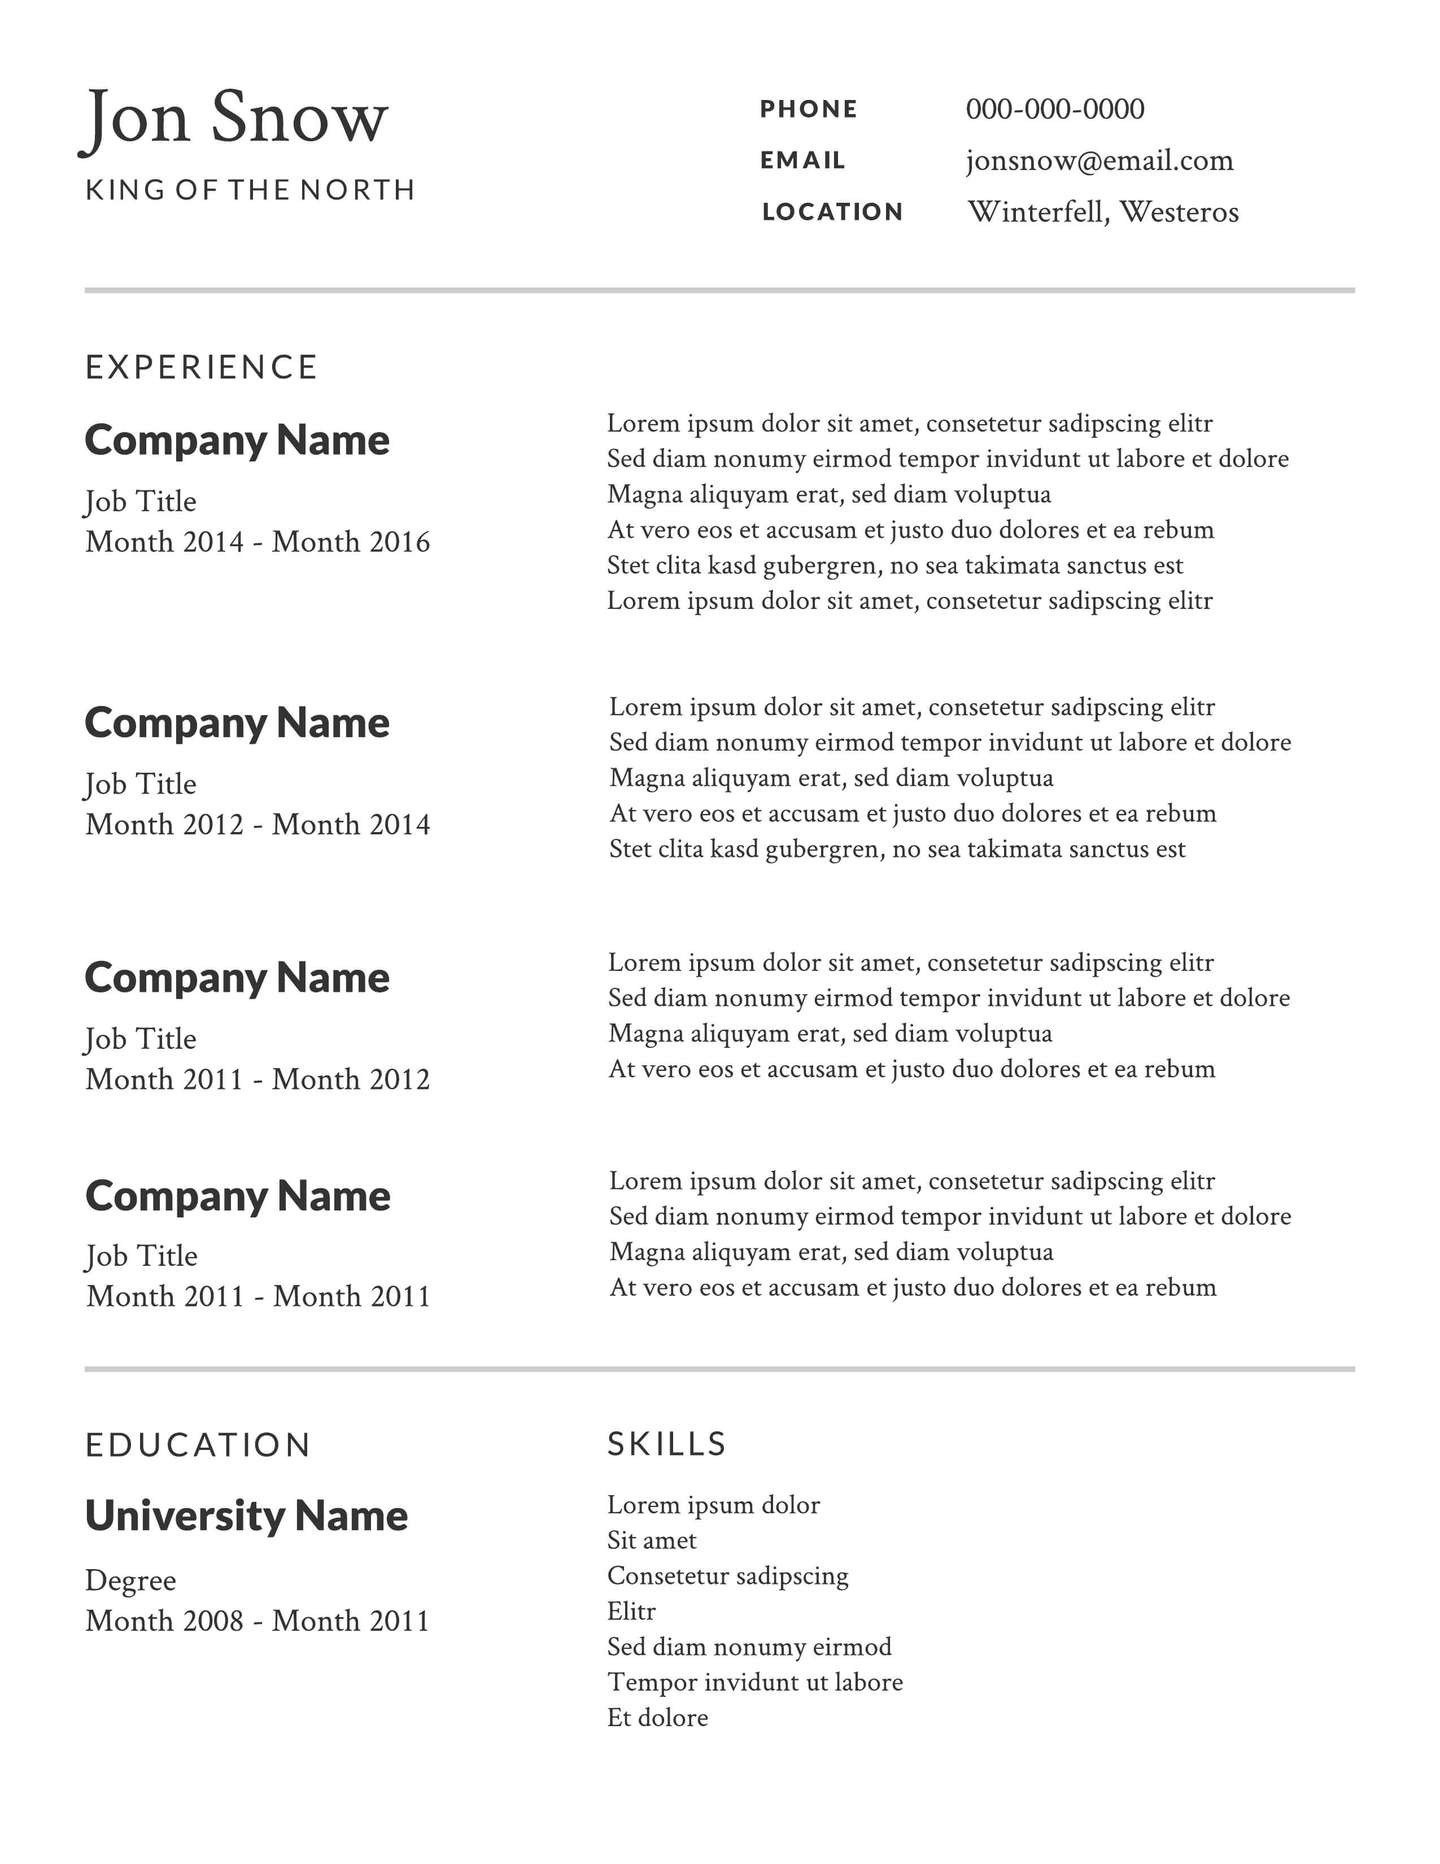 Free Sample Resume Templates Free Simple or Basic Resume Templates